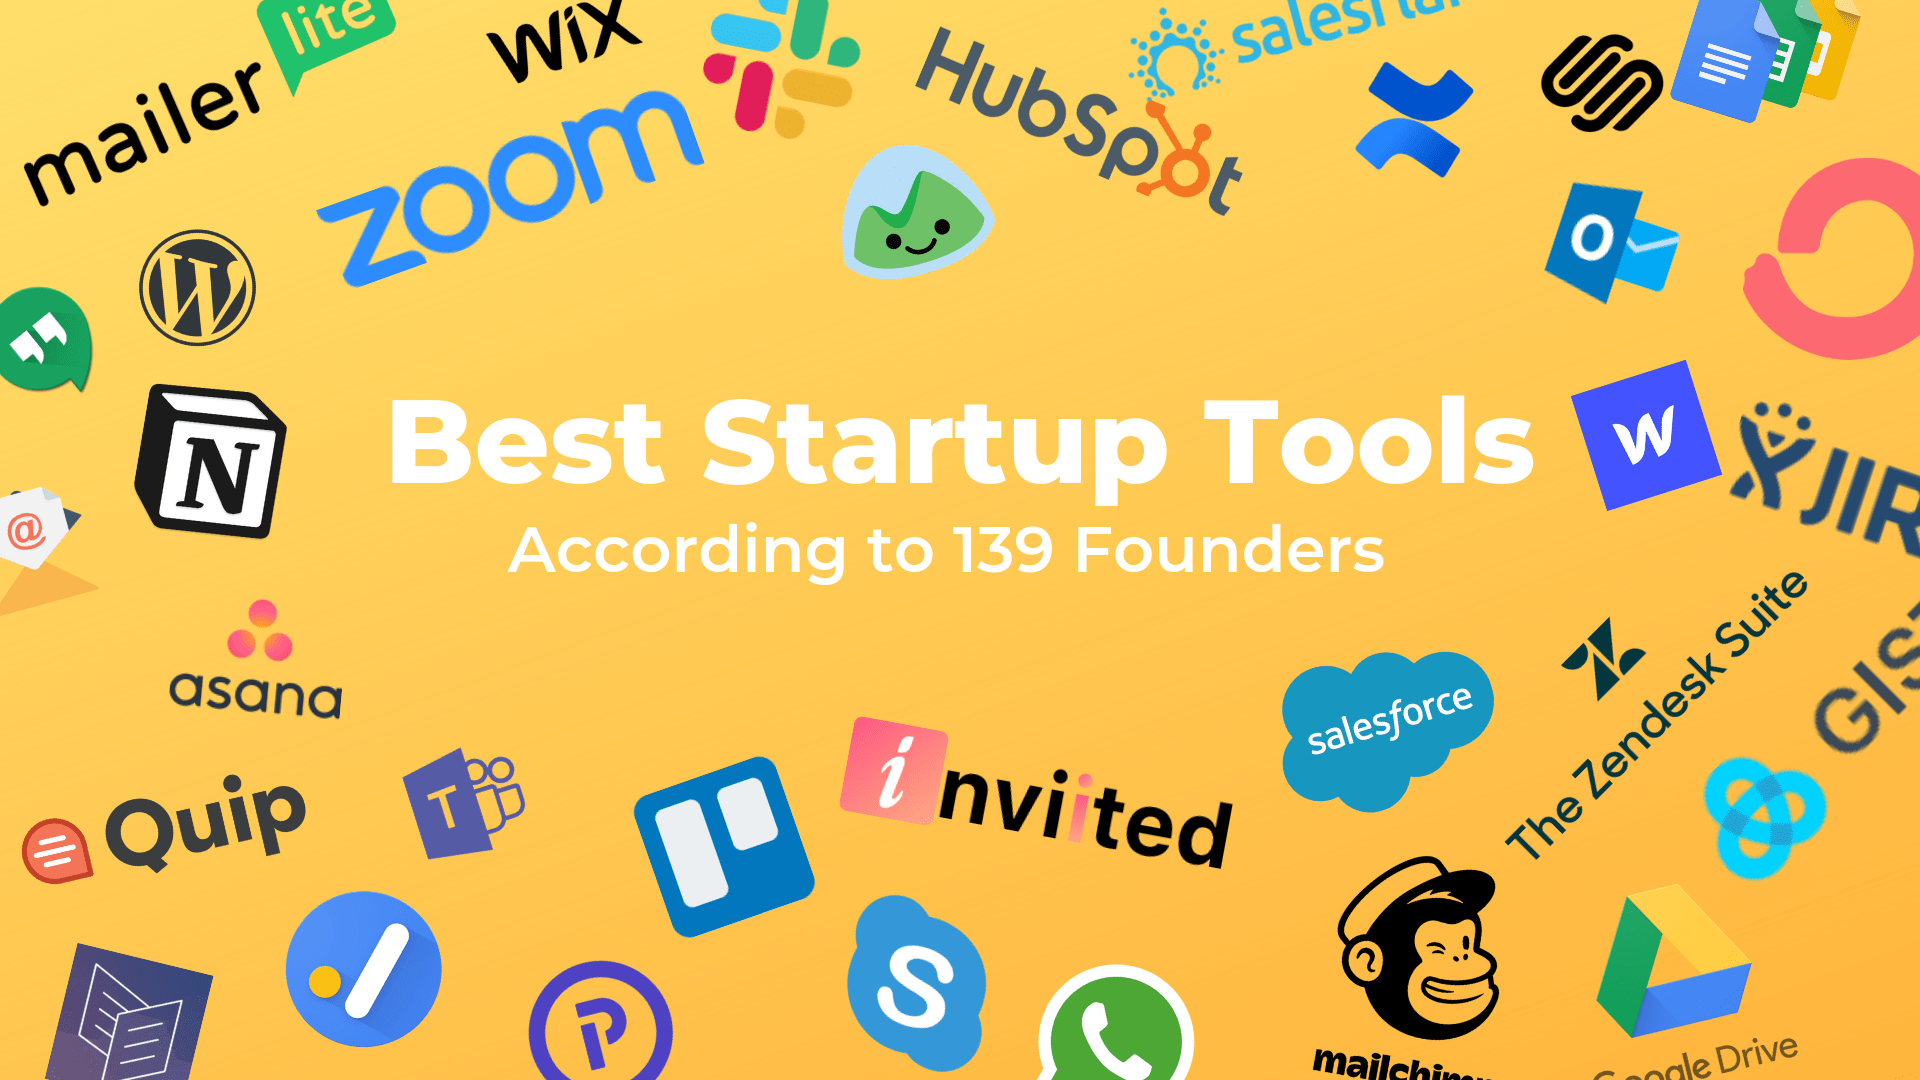 Best Startup Tools - according to 139 founders